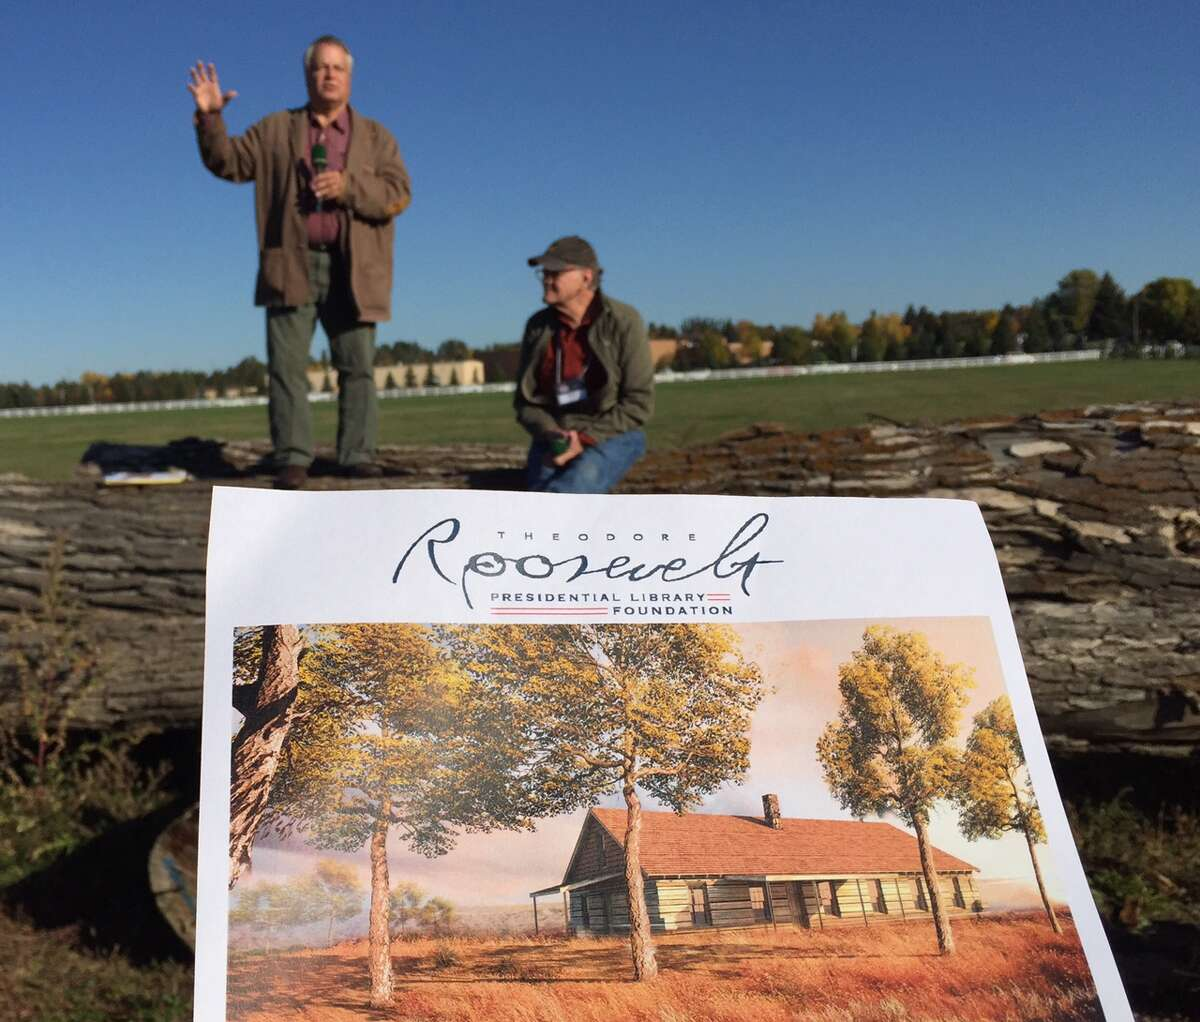 An artist's rendering of a planned reproduction of Theodore Roosevelt's 1885 Elkhorn Ranch cabin is in the foreground with Clay Jenkinson, left, and Dr. Bruce Pitts, board chair of the heodore Roosevelt Presidential Library & Museum at Dickinson State University in Dickinson, ND (Paul Grondahl / Times Union)